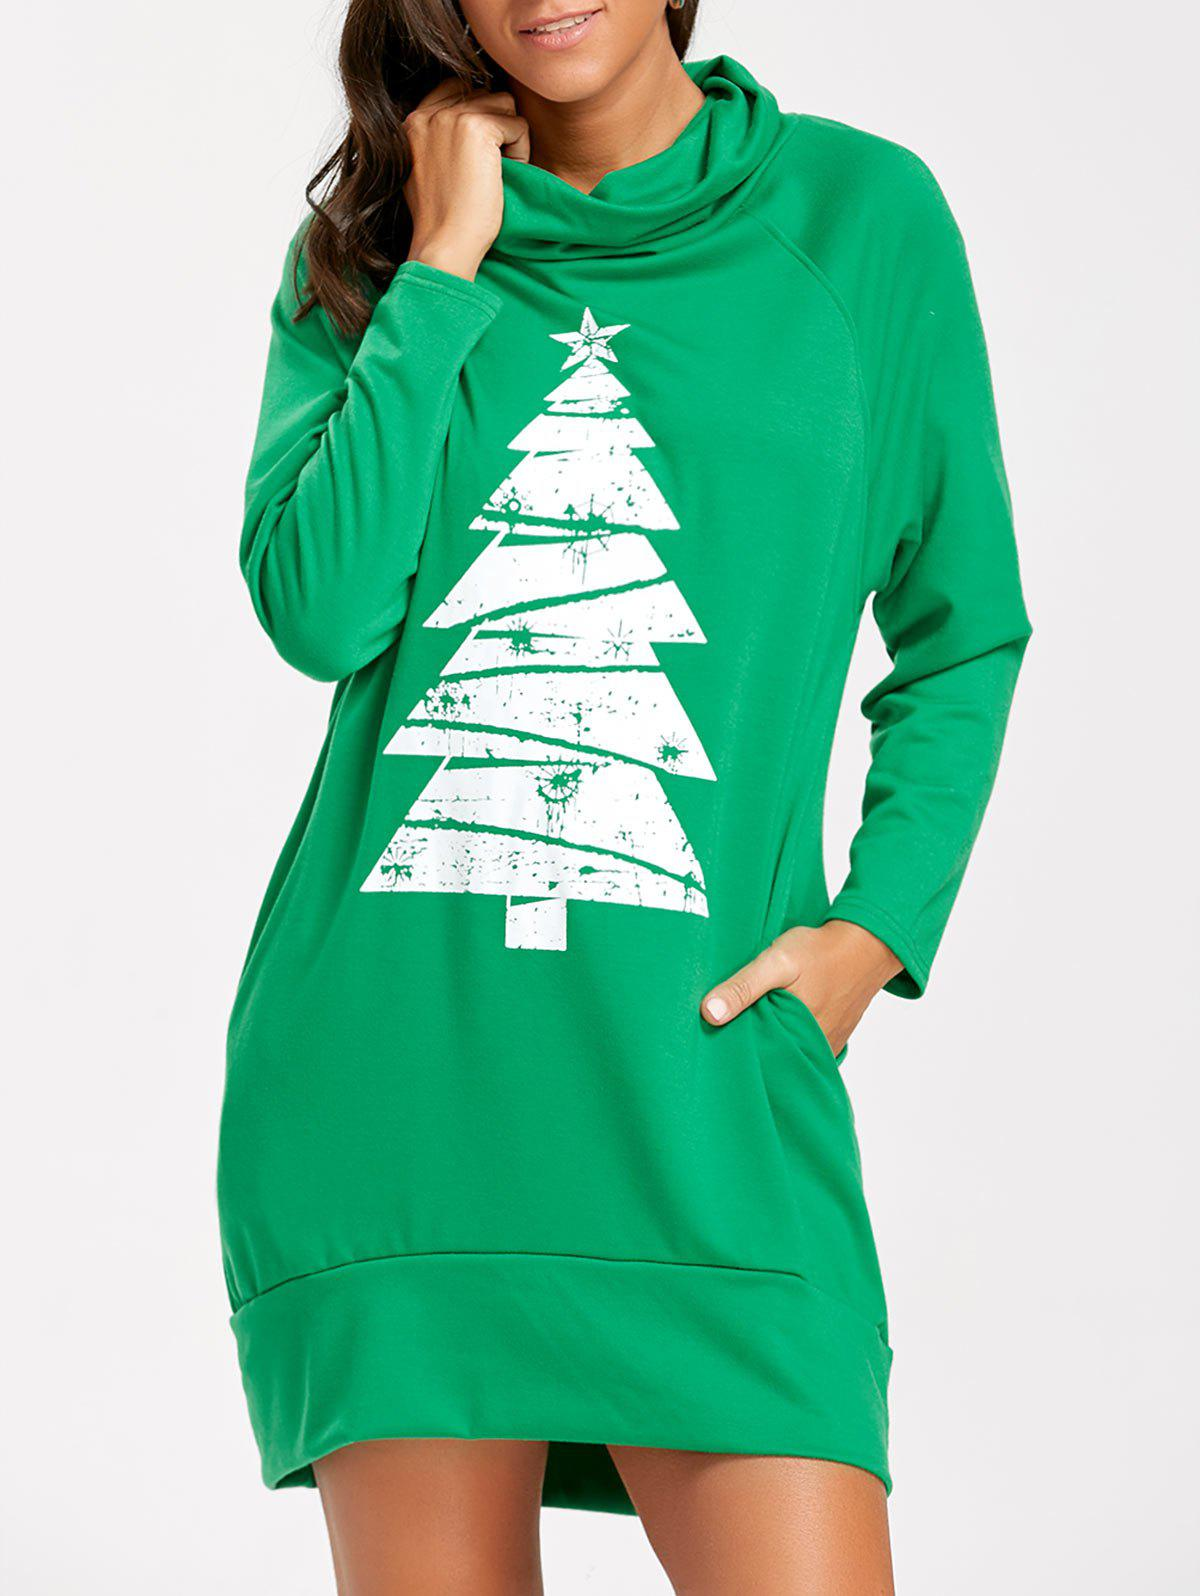 Raglan Sleeve Cowl Neck Christmas Sweatshirt DressWOMEN<br><br>Size: S; Color: GREEN; Style: Casual; Material: Polyester; Silhouette: Straight; Dresses Length: Mini; Neckline: Cowl Neck; Sleeve Length: Long Sleeves; Pattern Type: Print; With Belt: No; Season: Fall,Spring; Weight: 0.4000kg; Package Contents: 1 x Dress; Occasion: Casual;